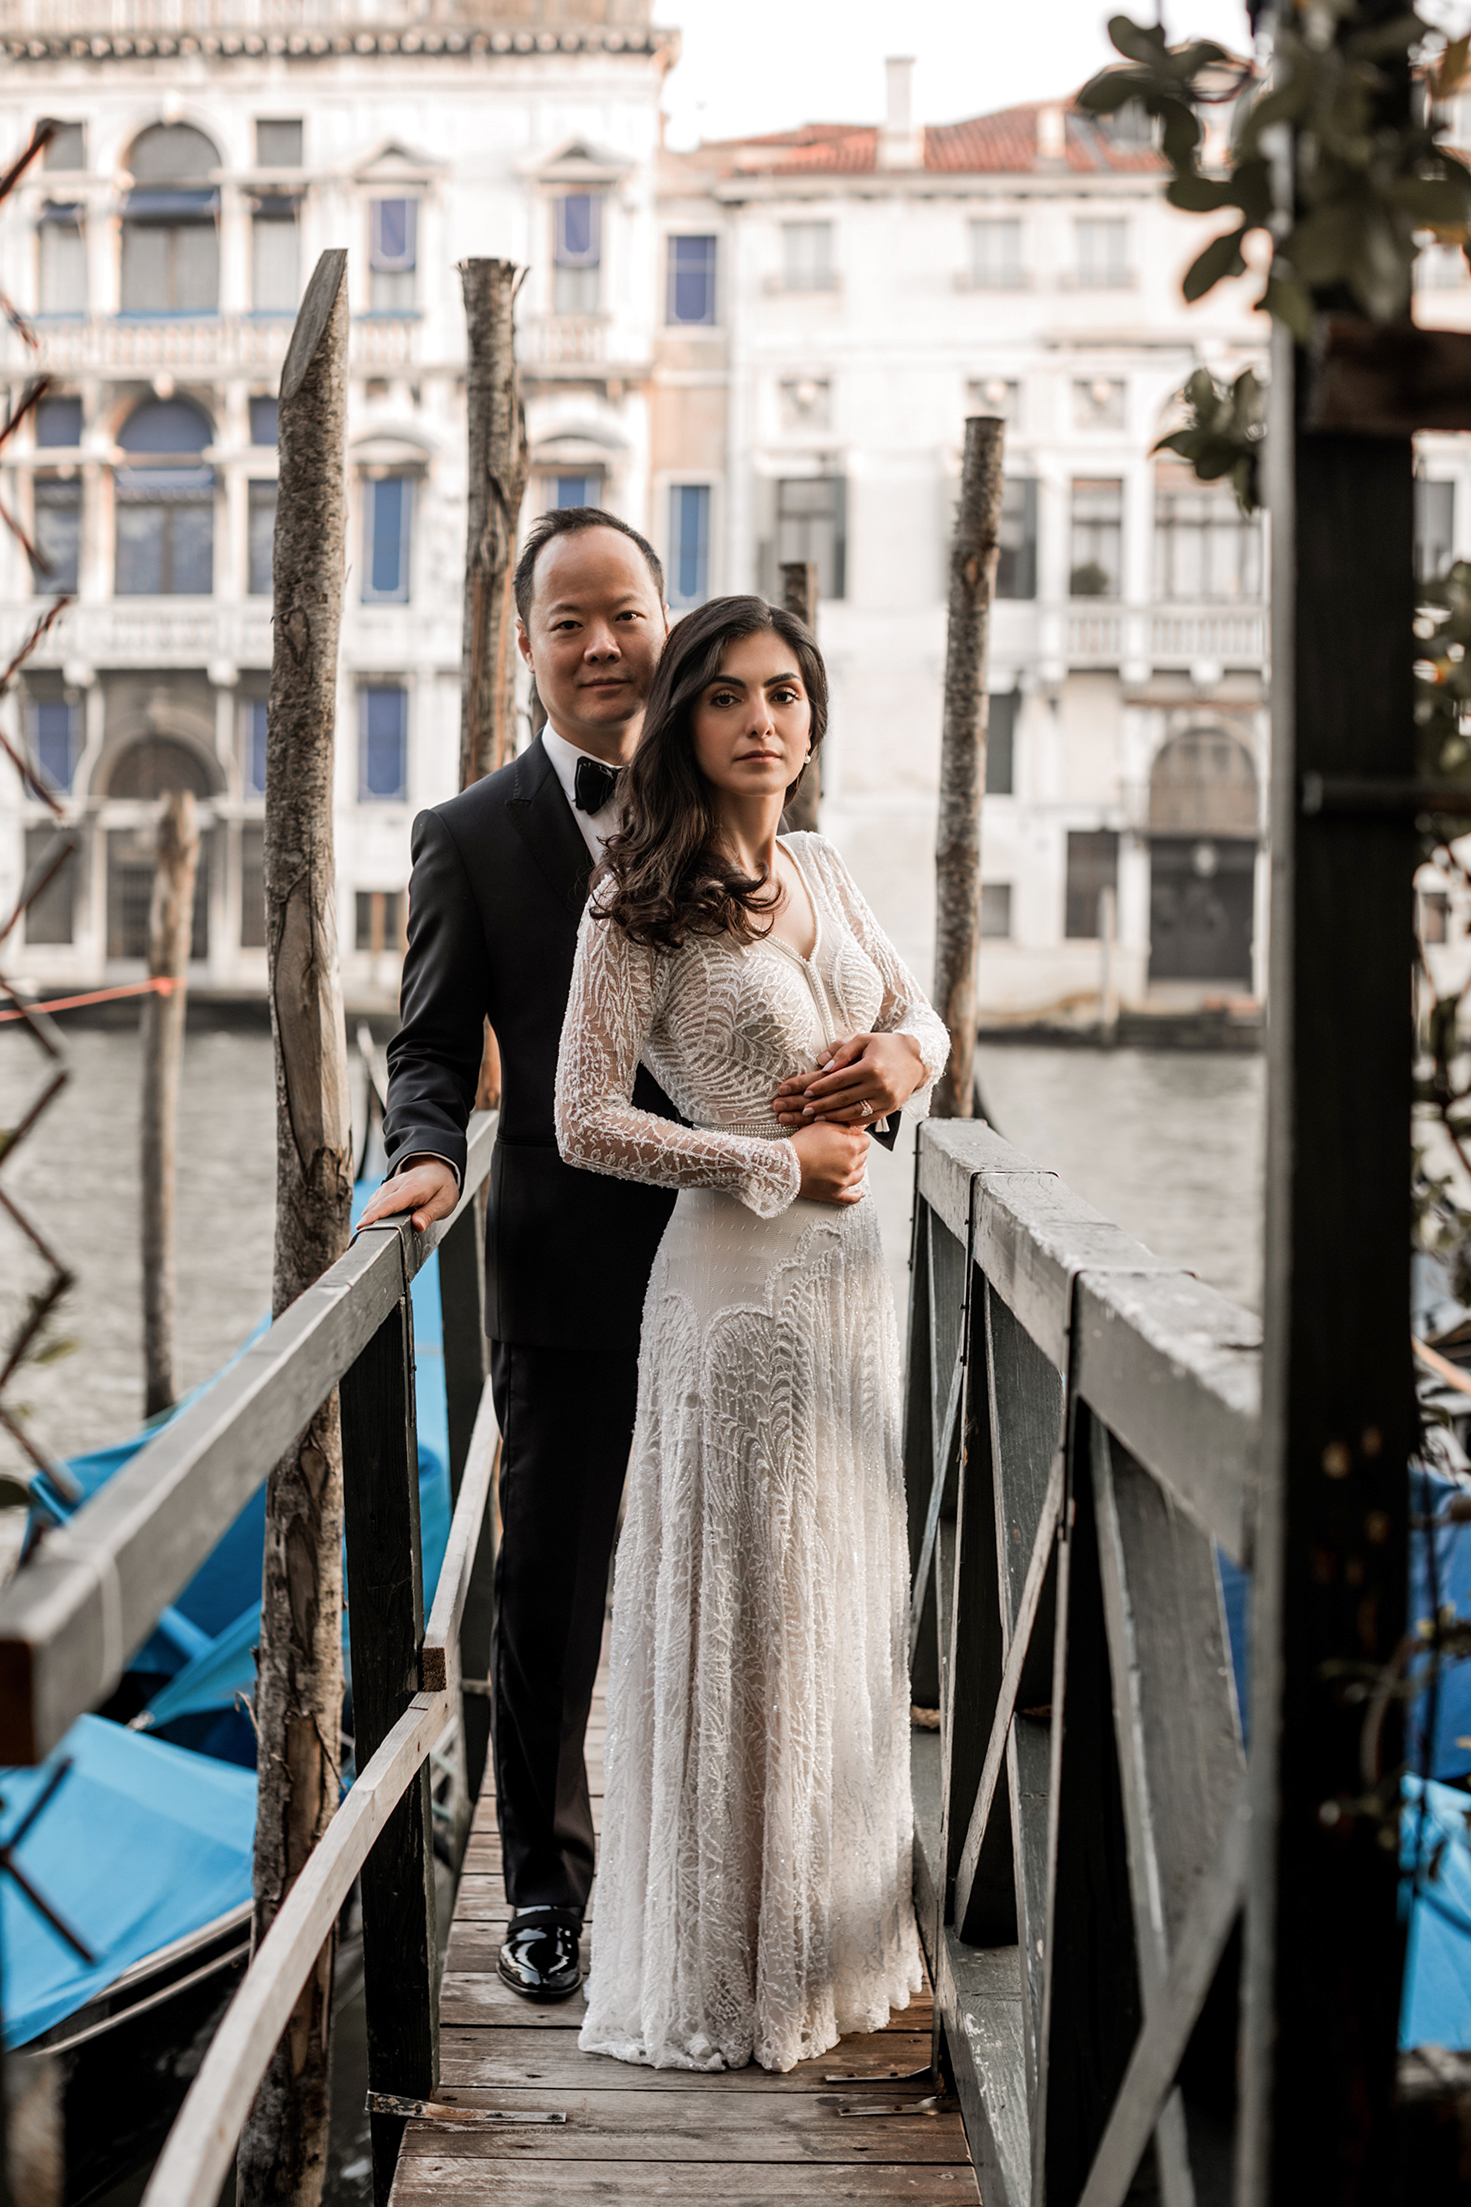 This Intimate Destination Wedding Was Held at a 15th Century Venetian Palace